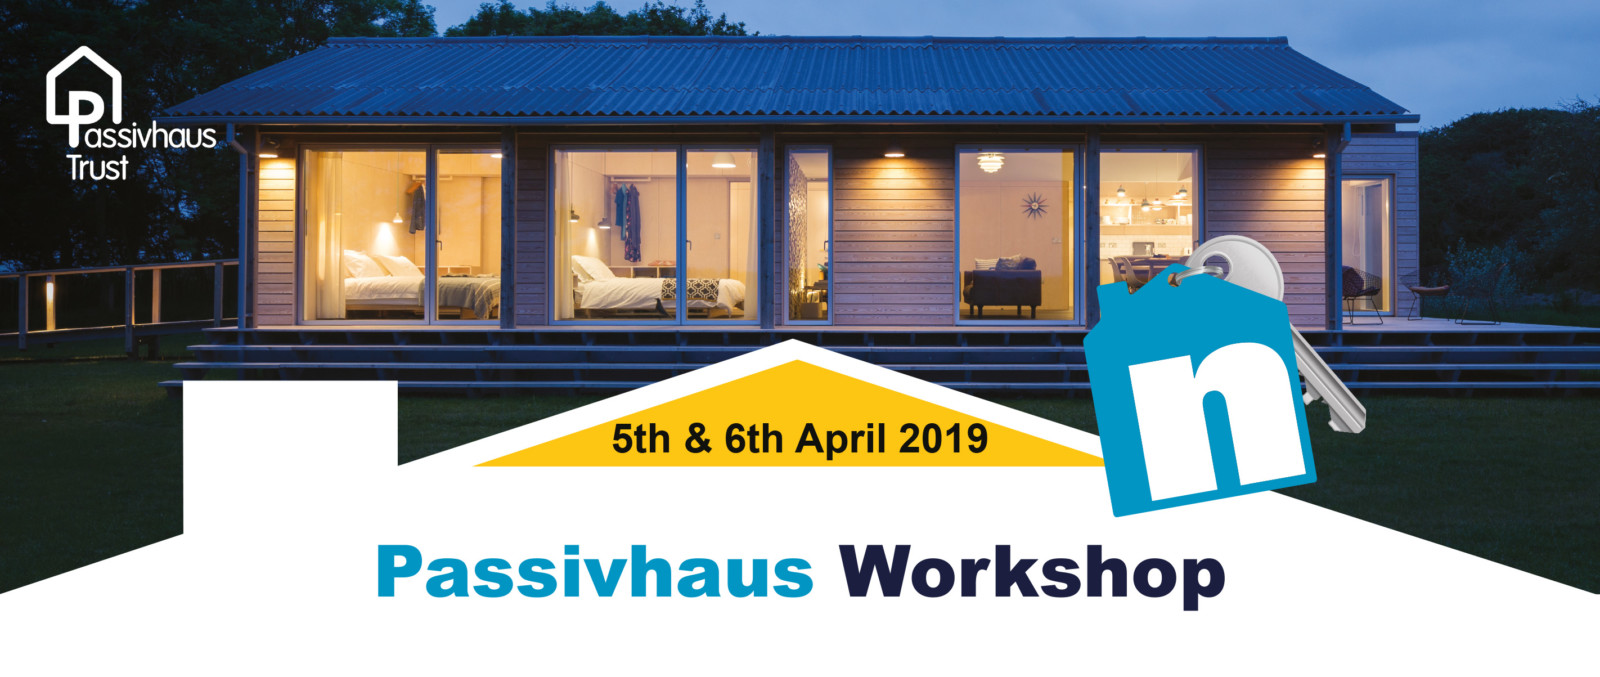 Passivhaus Workshop 2019